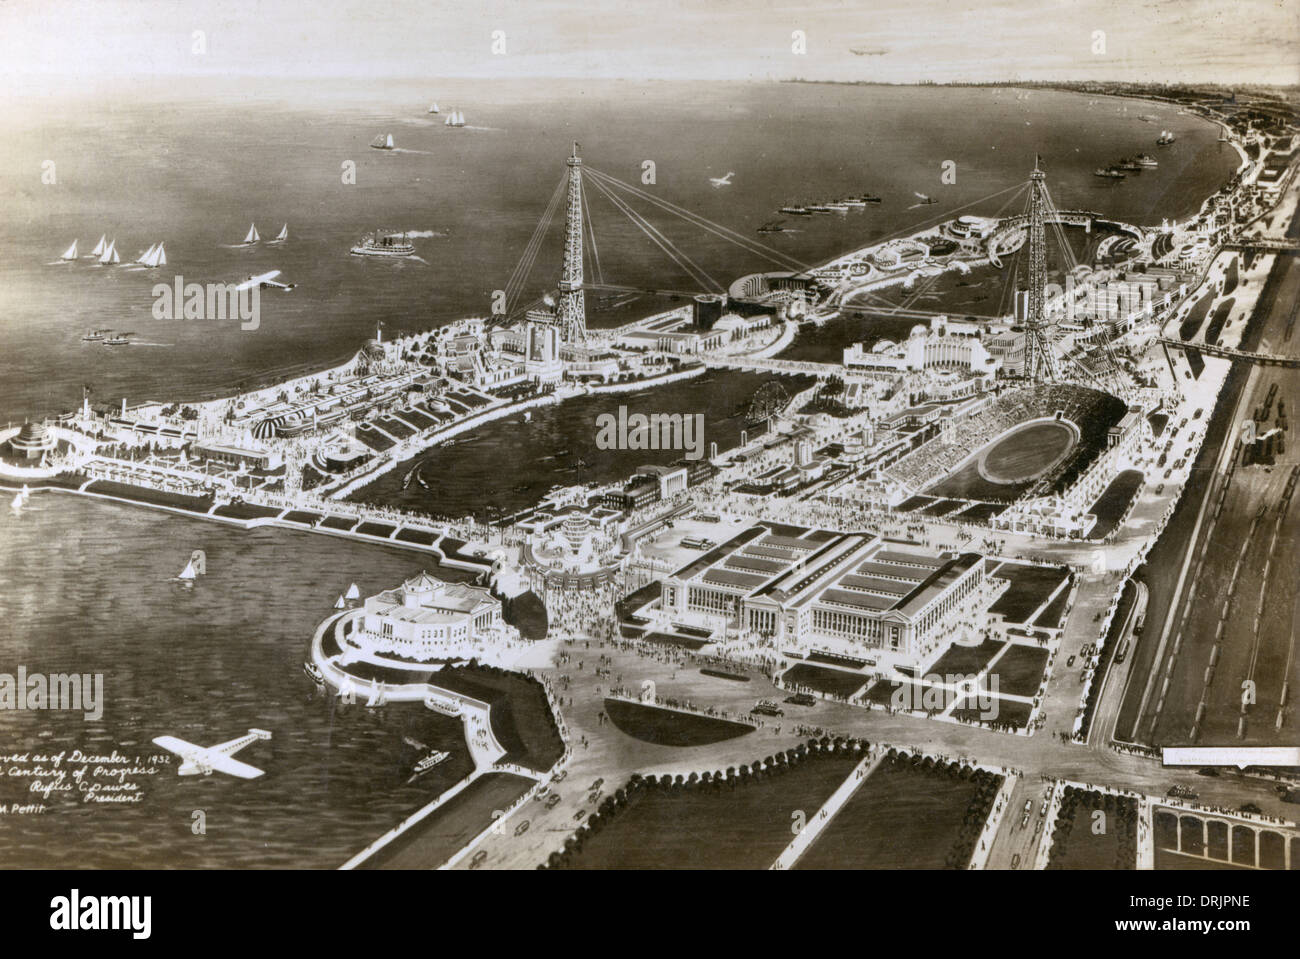 Artists impression, aerial view of the Chicago World's Fair - Stock Image